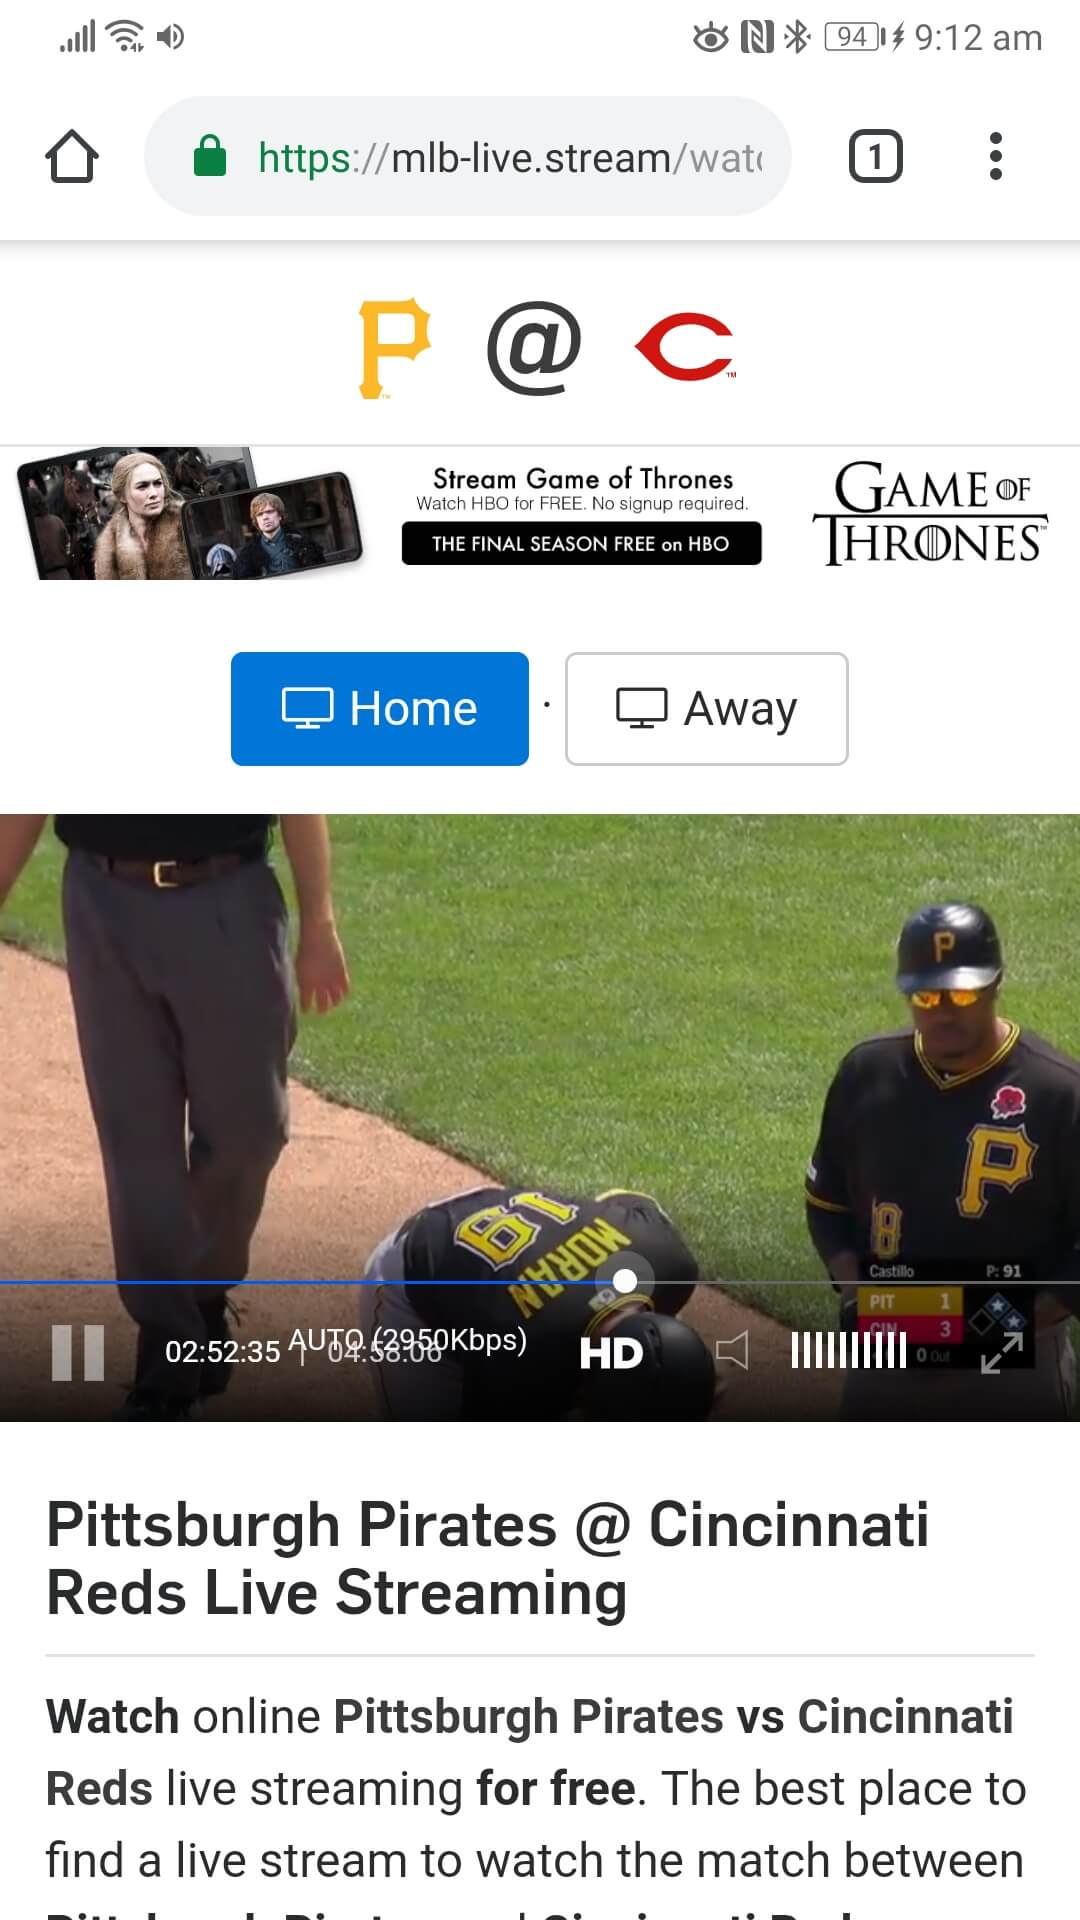 MLB-Live Website Streaming Game